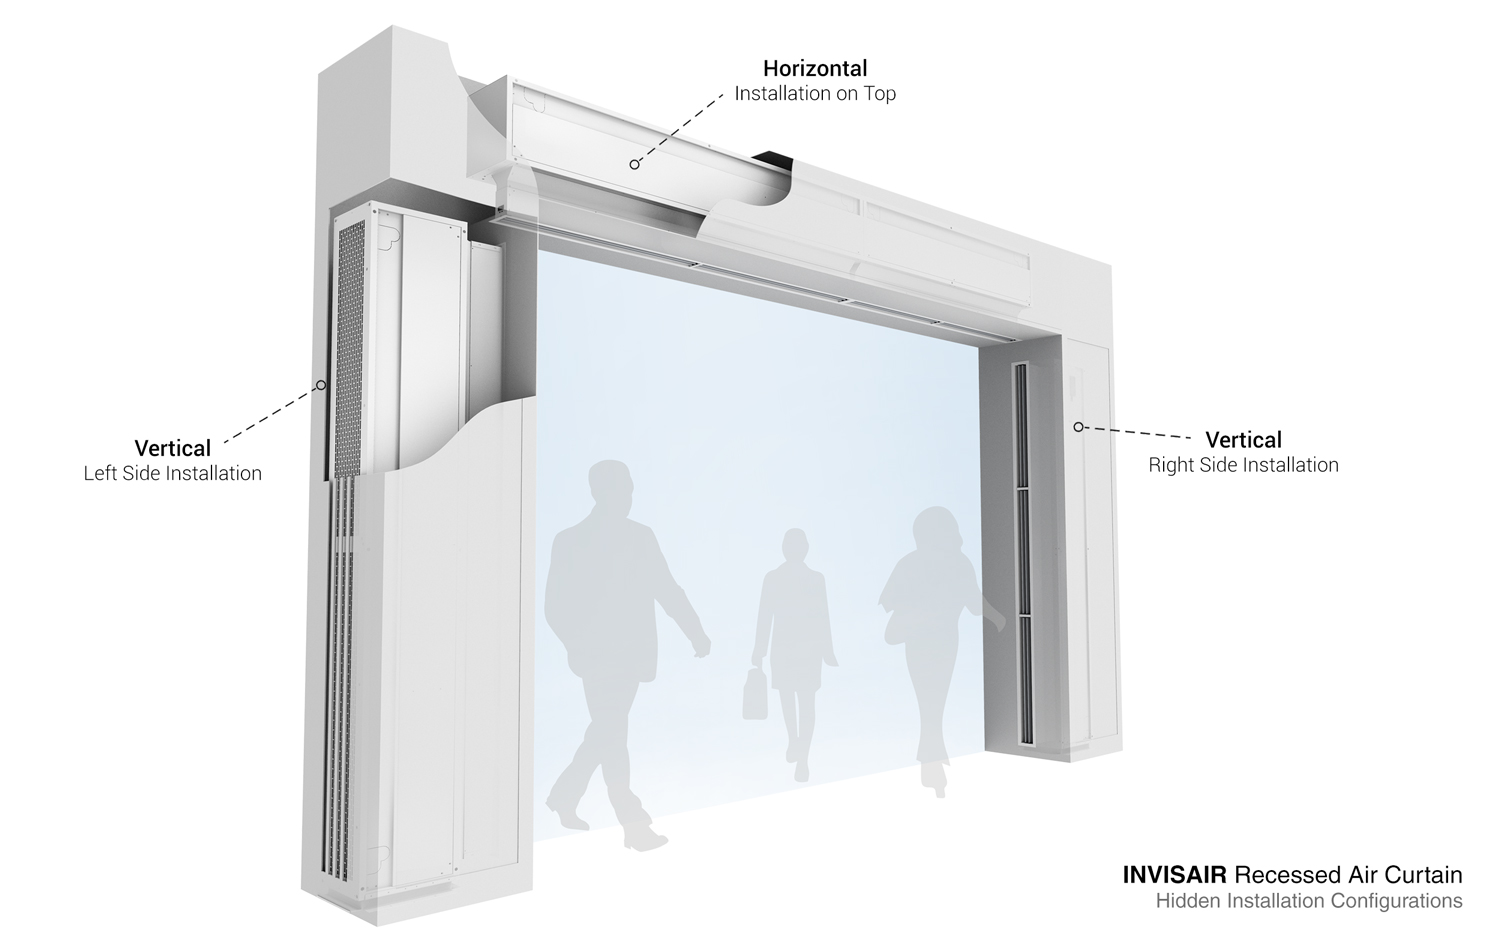 Air Curtain Invisair For Invisible Instalation